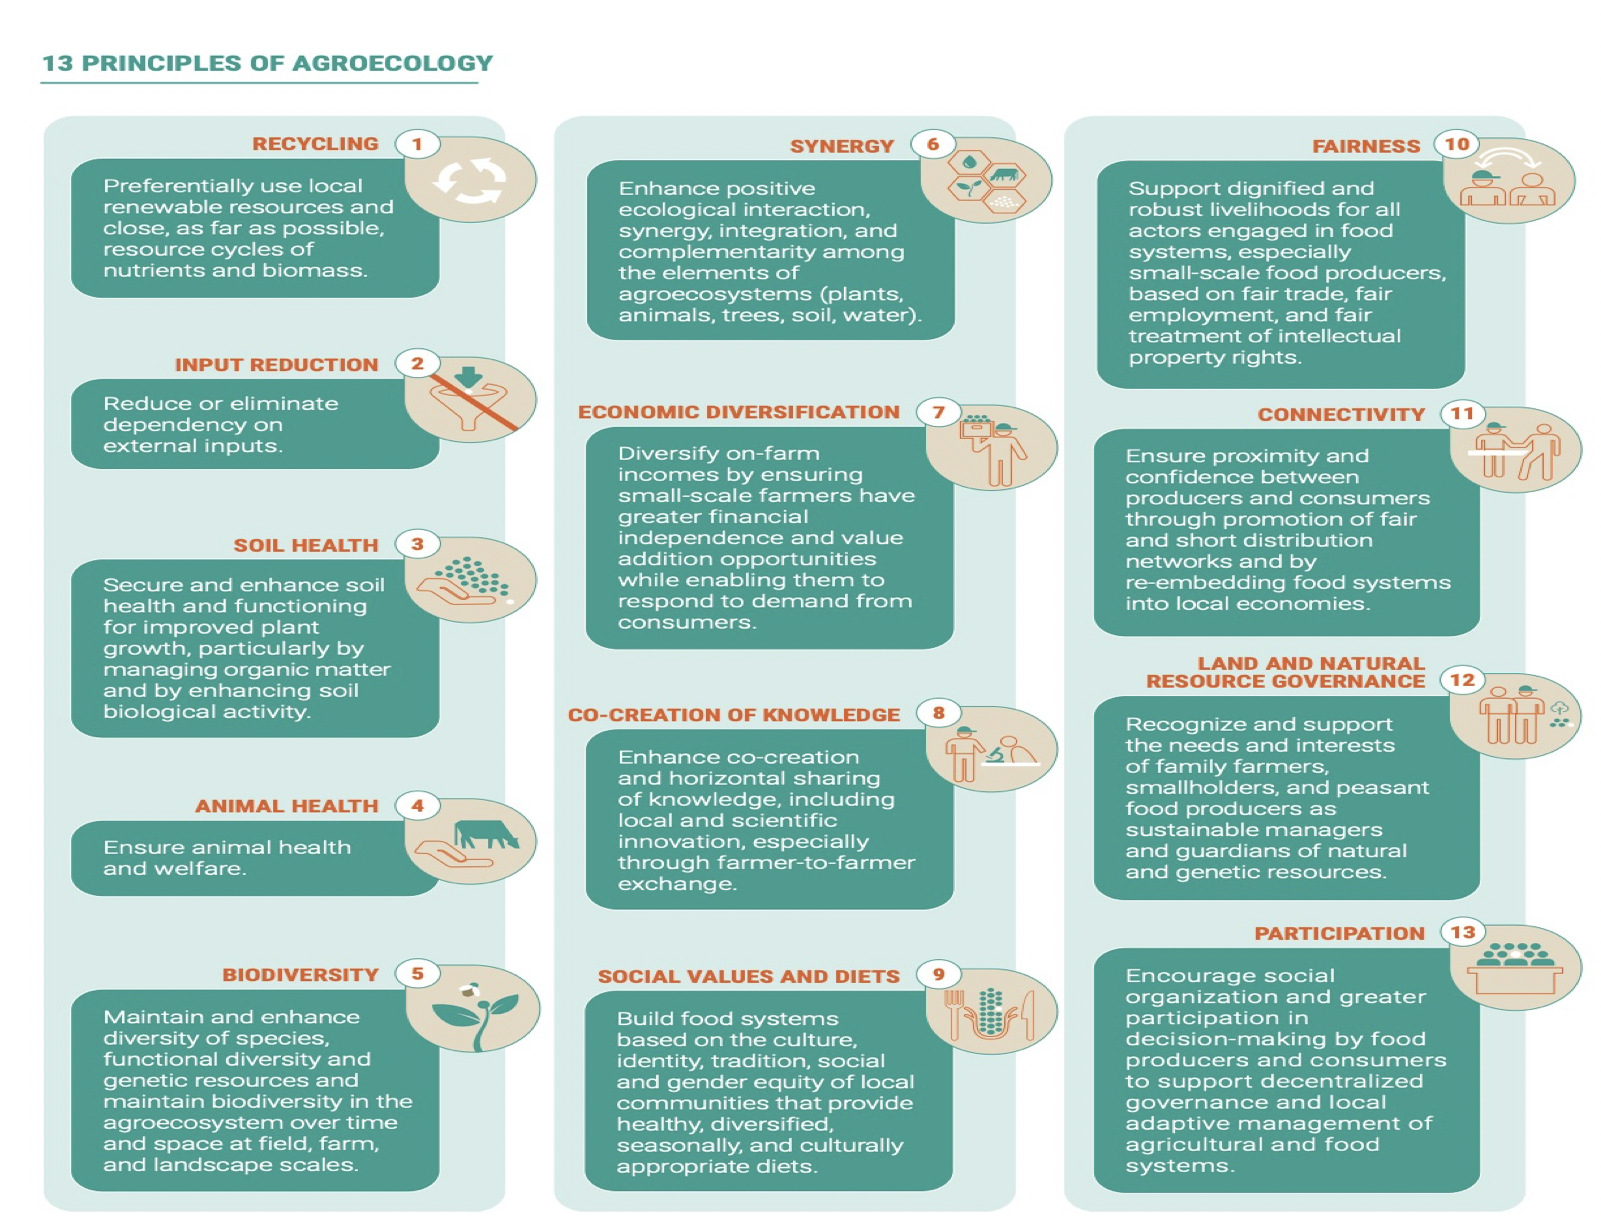 13 principles of agroecology